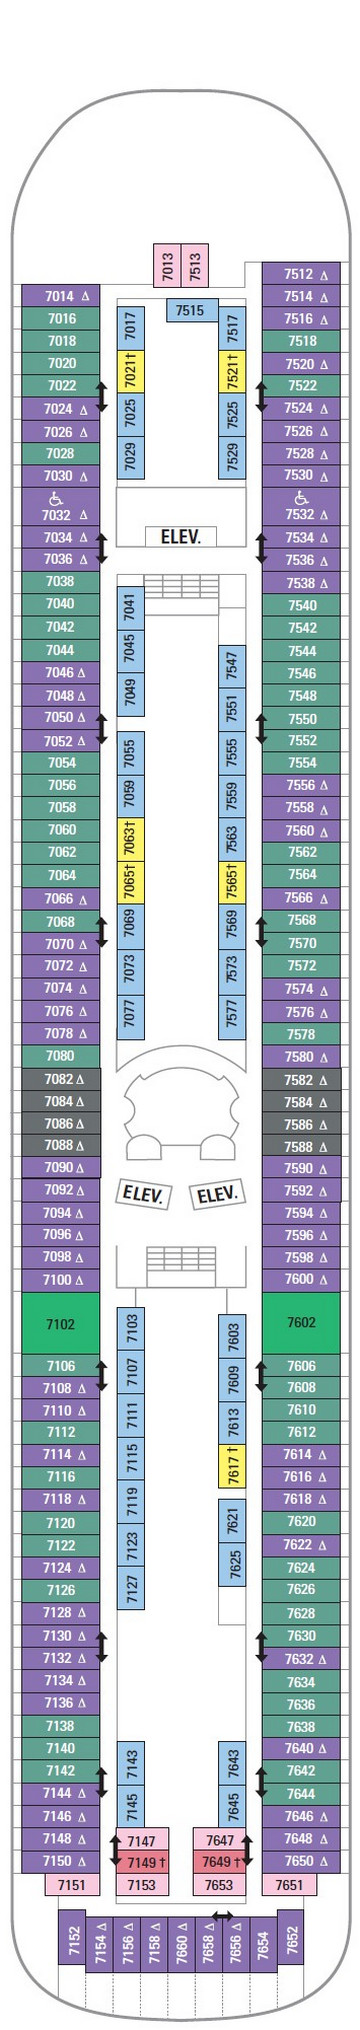 Vision Of The Seas Deck 7 layout